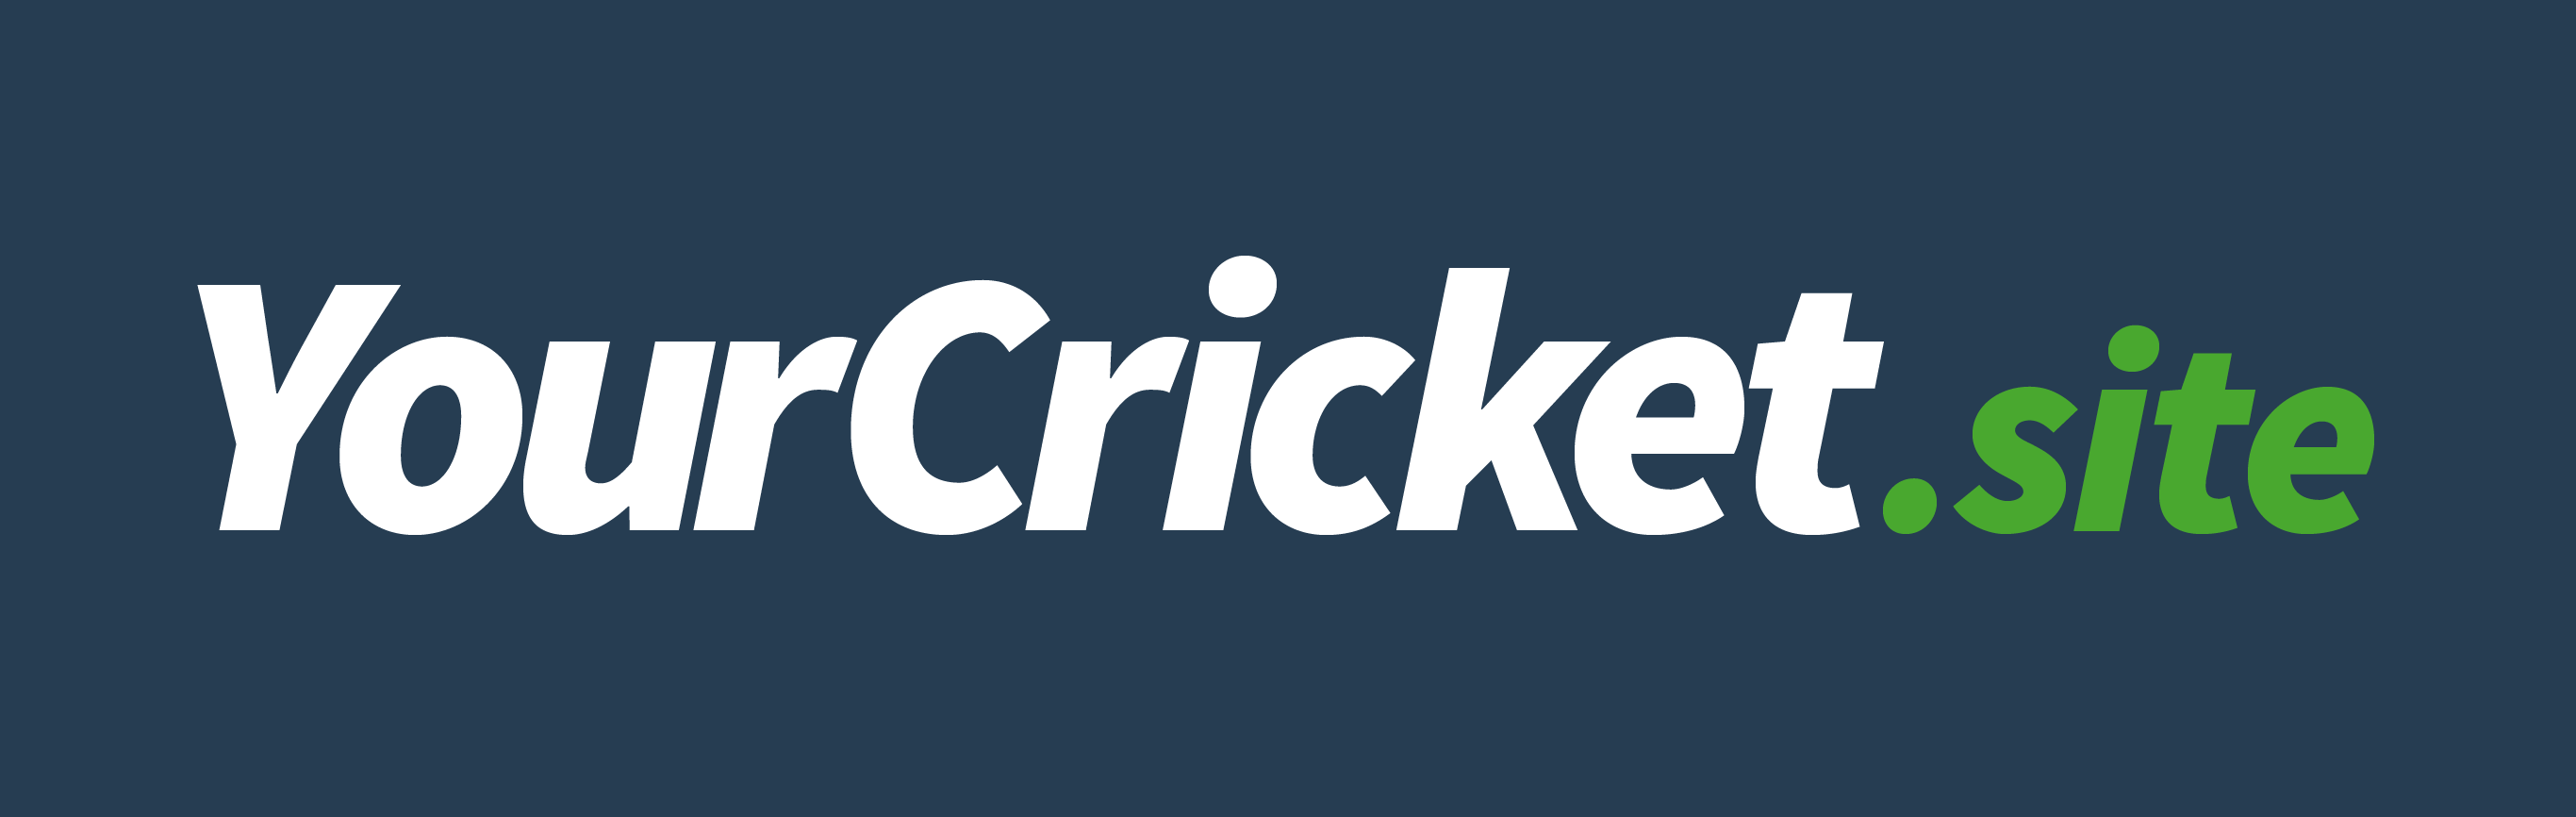 yourcricket.site